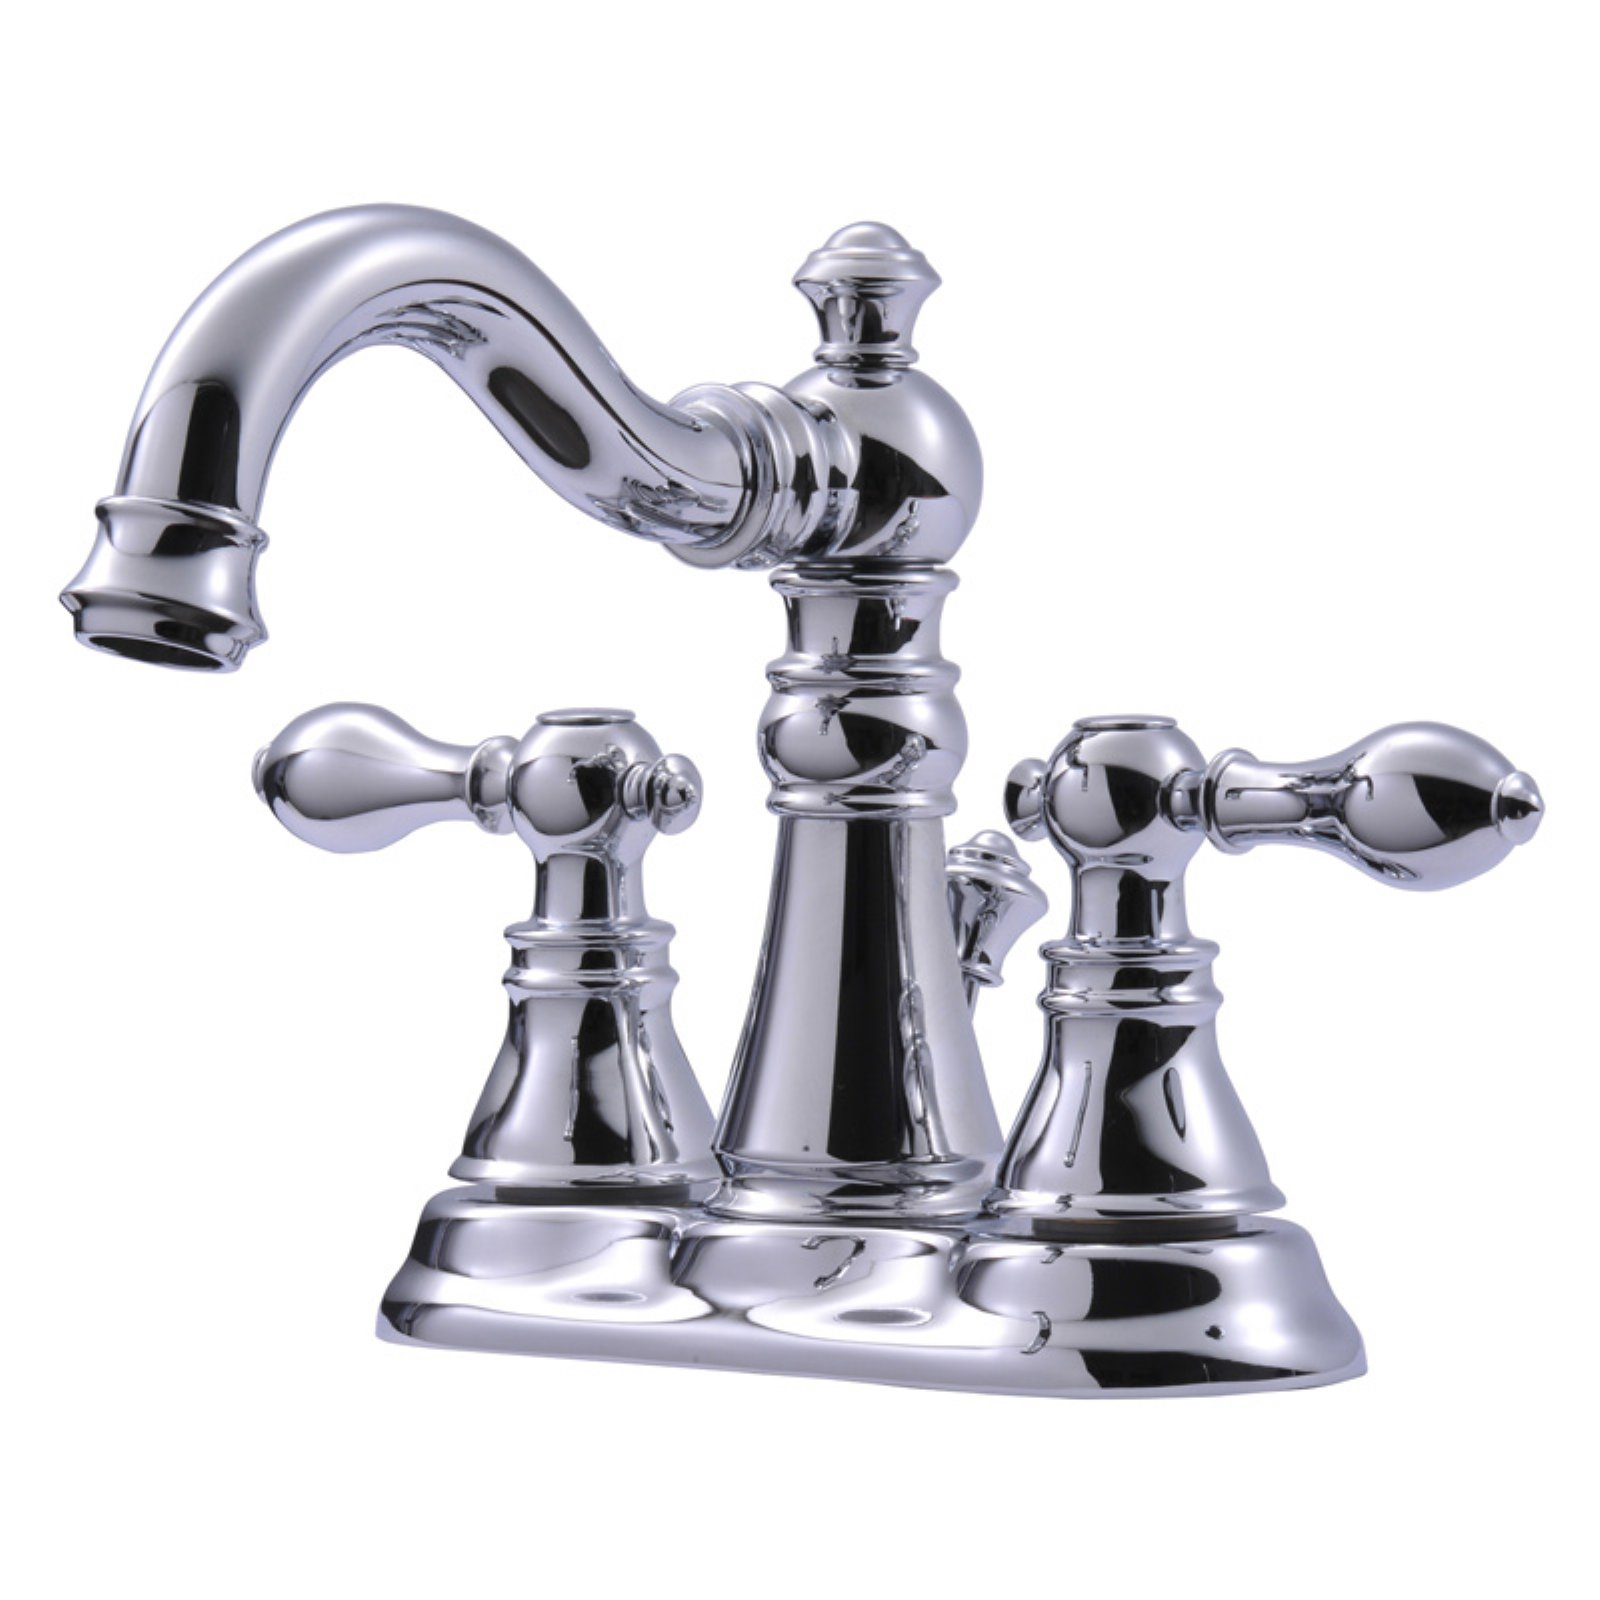 Ultra Faucets UF45115 2-Handle Oil Rubbed Bronze Victorian Lavatory Faucet